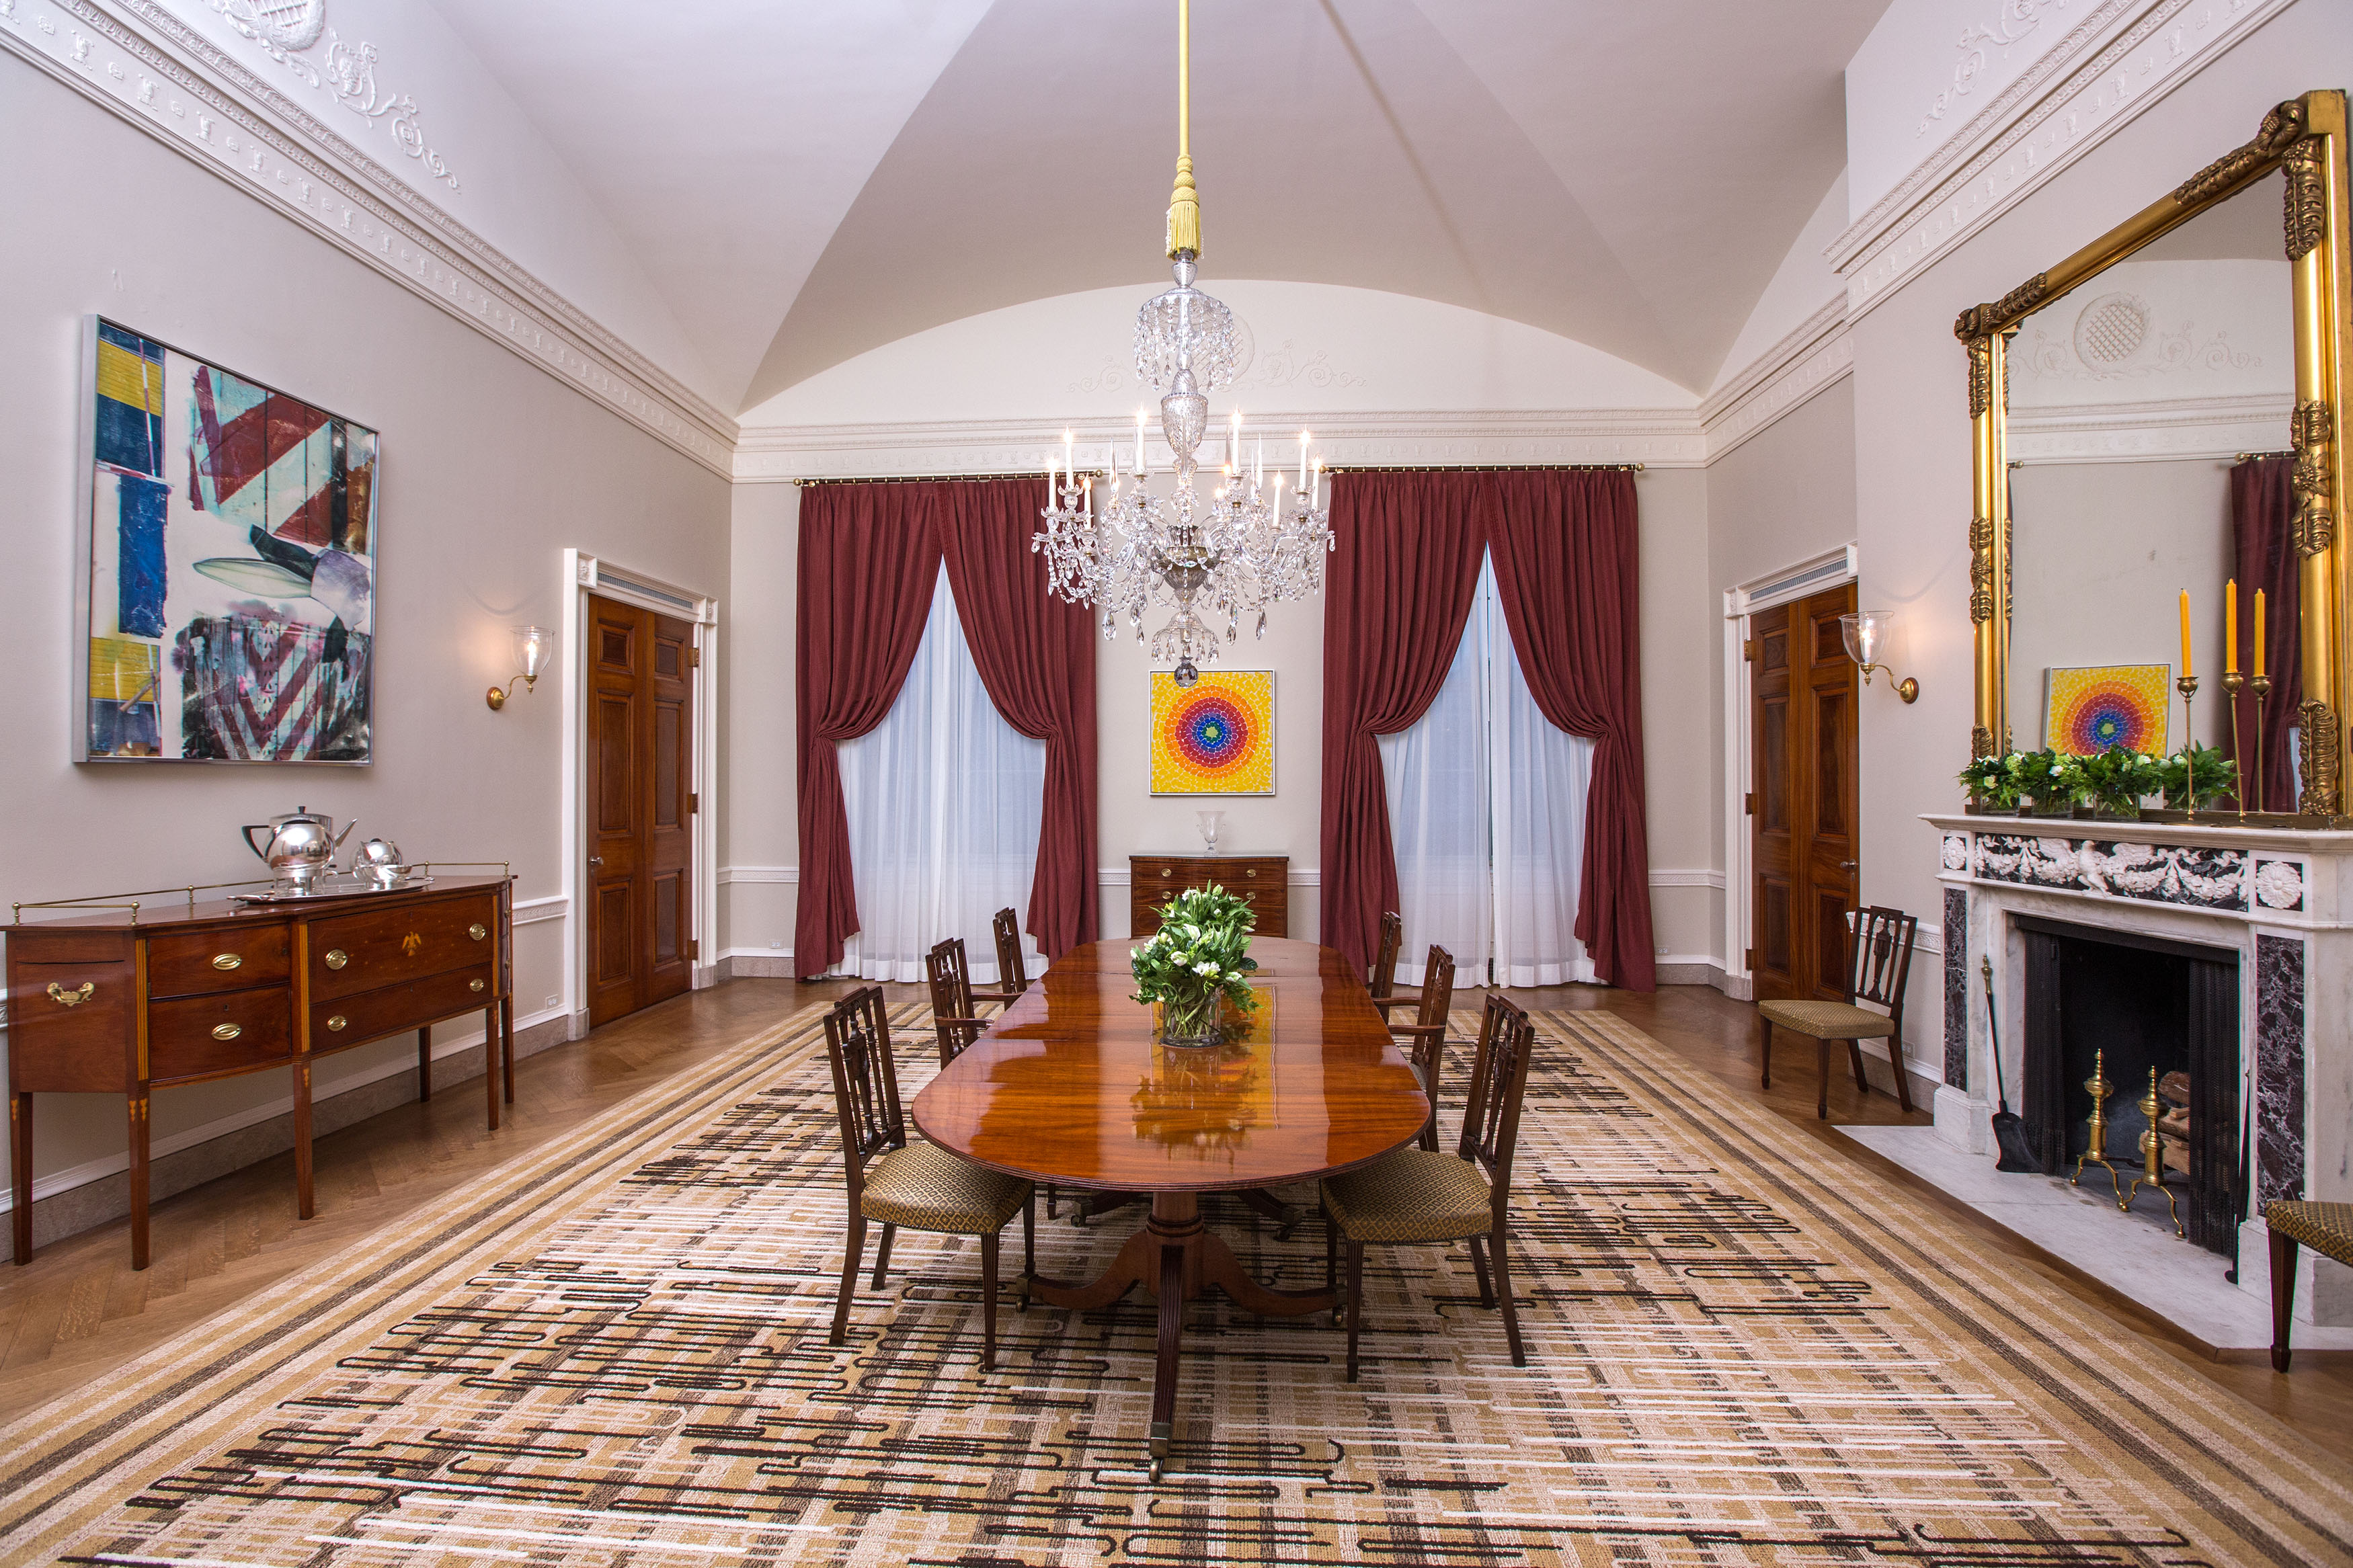 Beautiful The Old Family Dining Room Of The White House, Feb. 9, 2015.